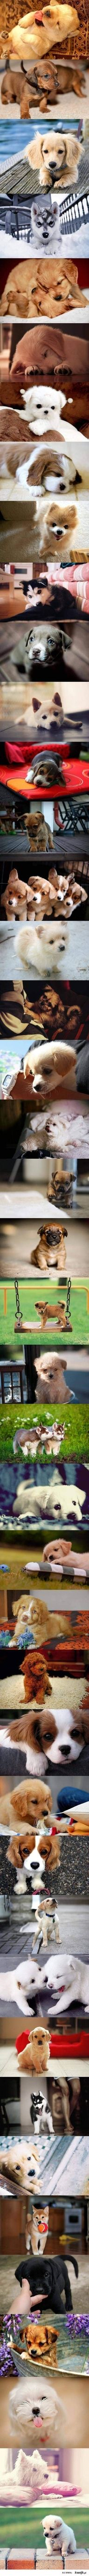 My head just exploded from all the cute.